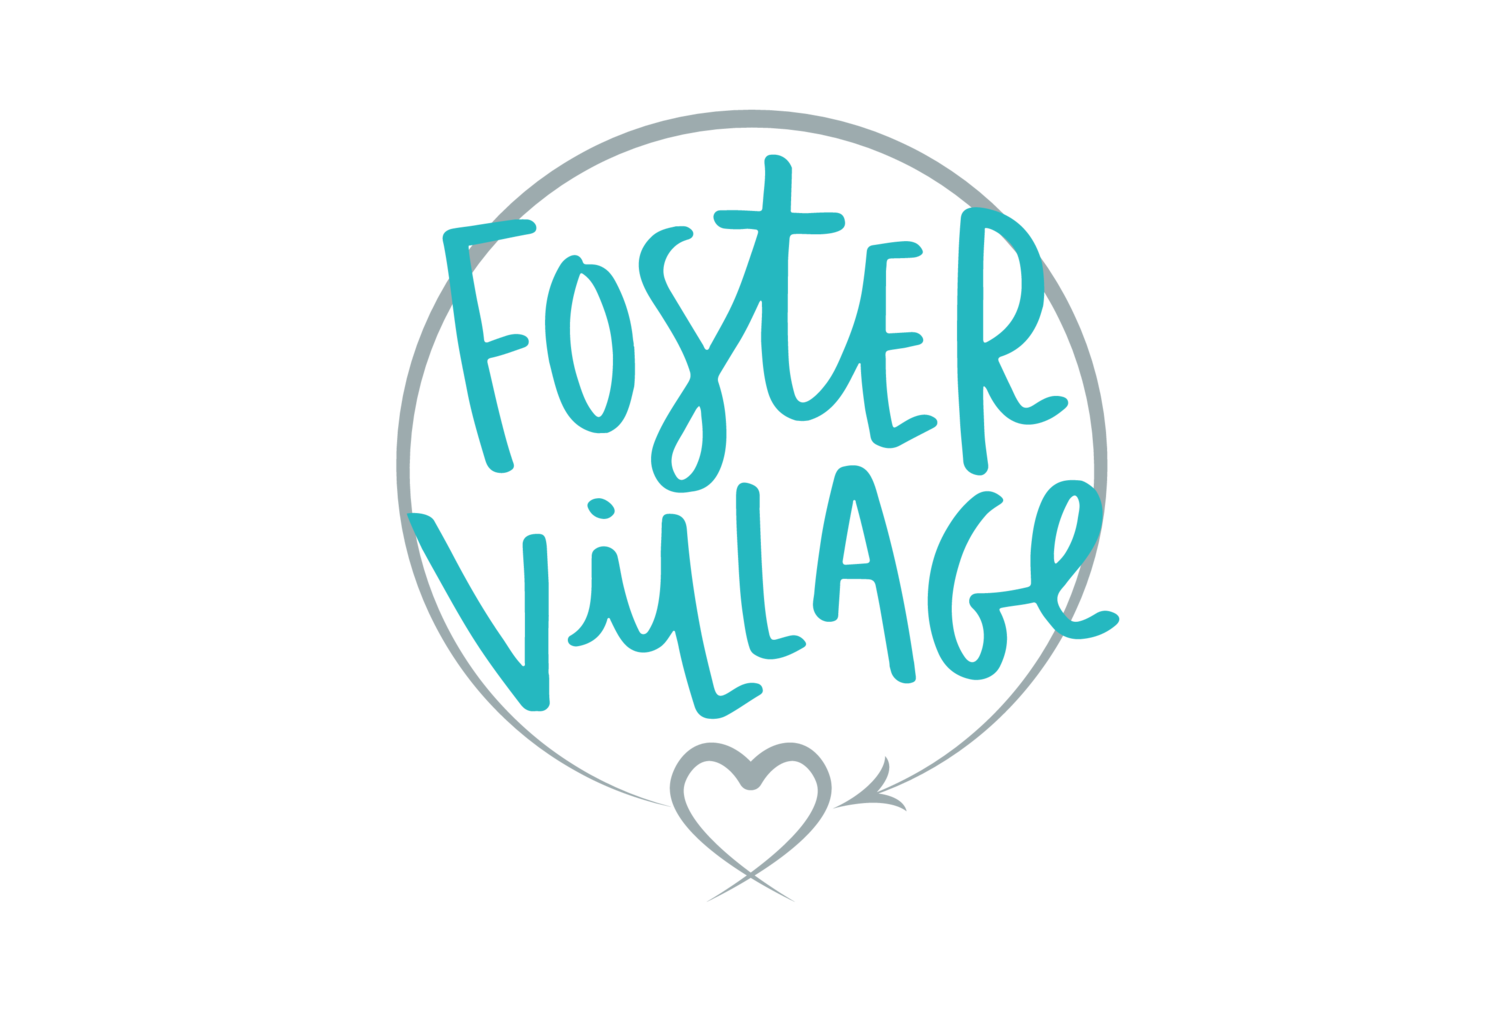 Foster Village Inc.